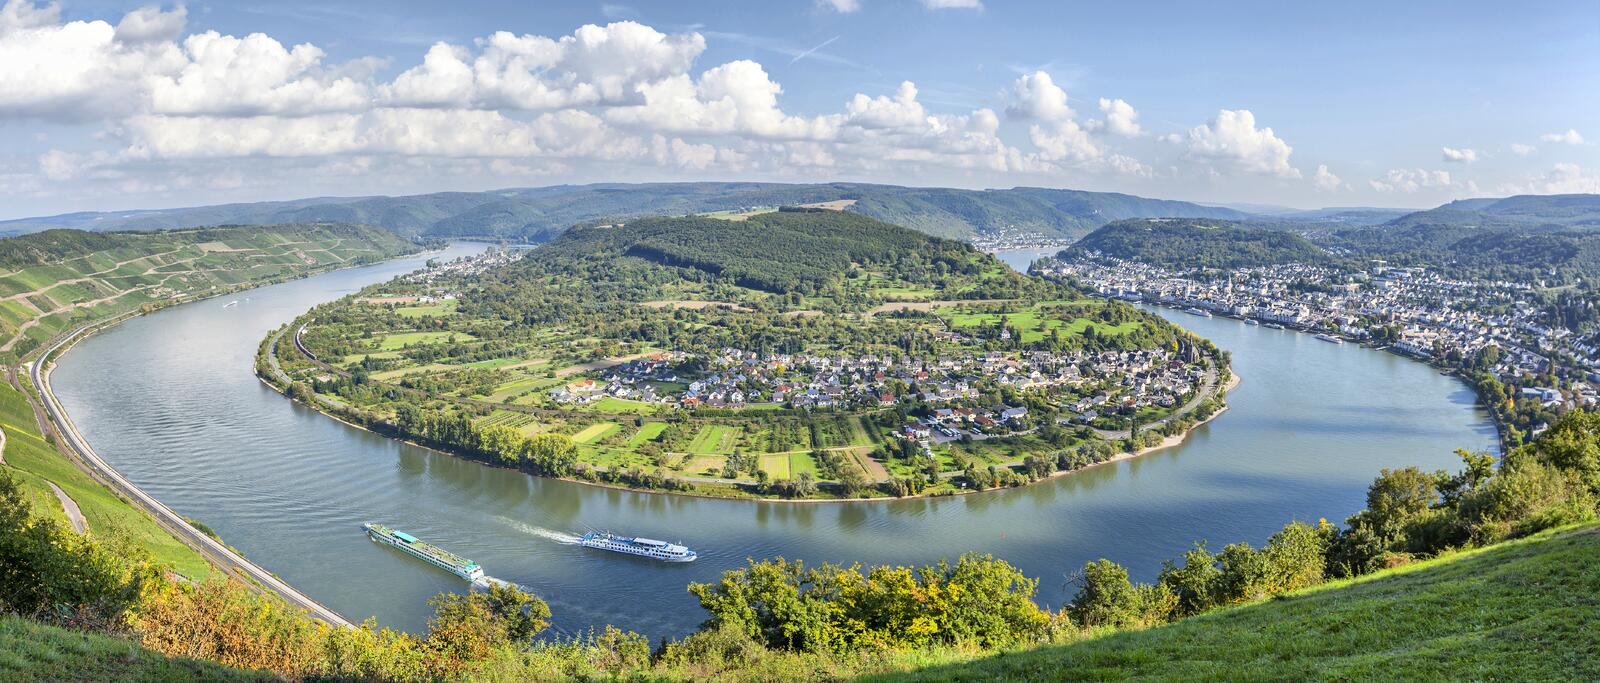 Picturesque bend of the river Rhine near Filsen. Picturesque bend of the river Rhine near the town Filsen, Germany, Rhineland-Palatinate royalty free stock photography